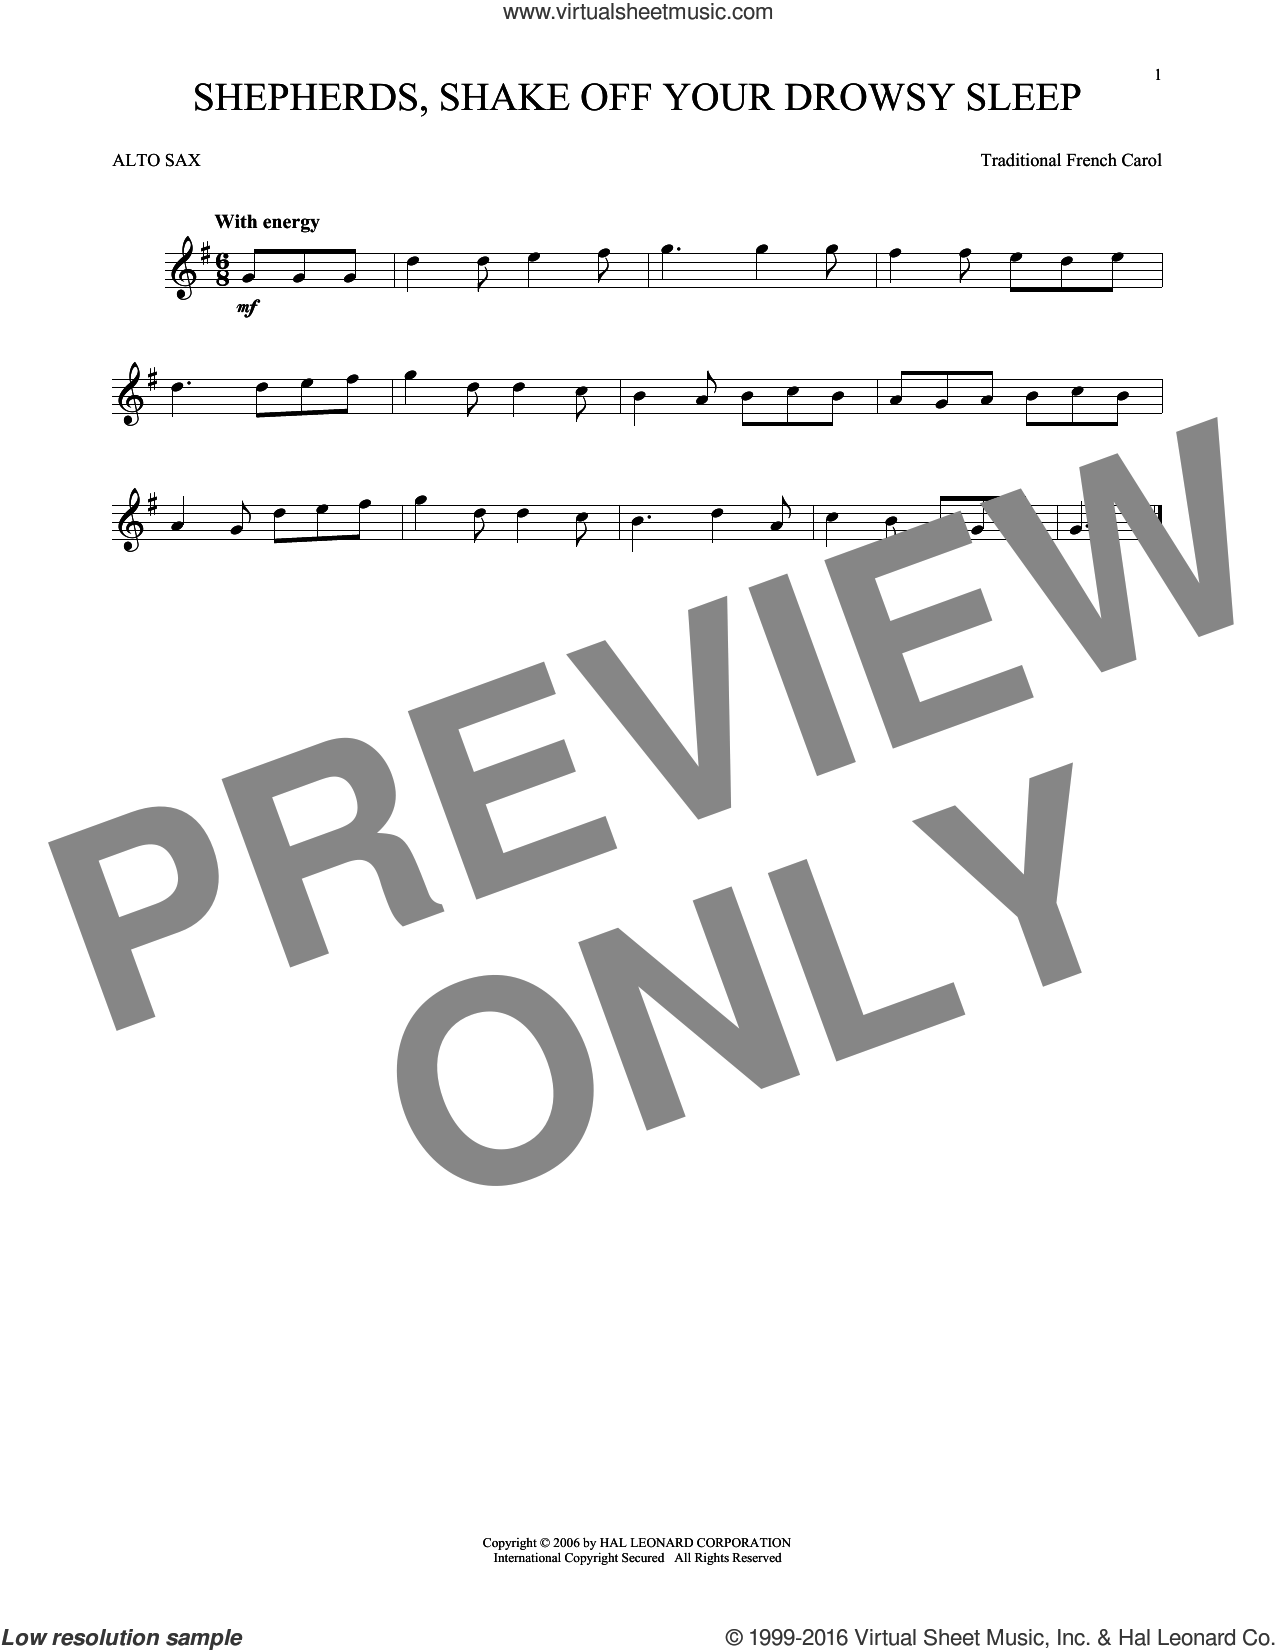 Shepherds, Shake Off Your Drowsy Sleep sheet music for alto saxophone solo. Score Image Preview.